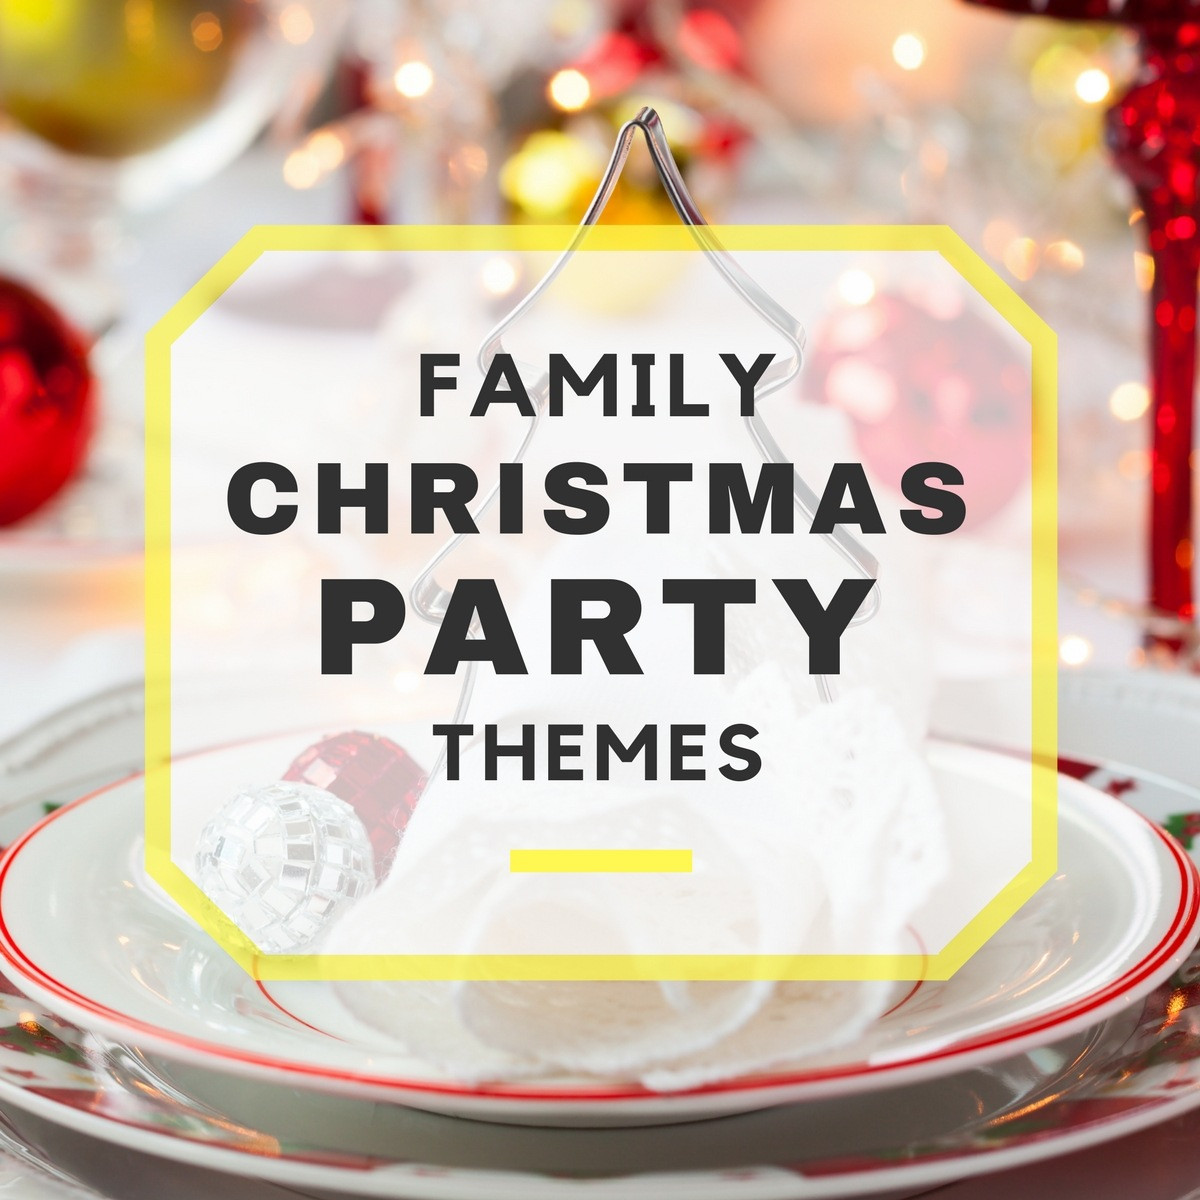 Family Holiday Party Ideas  Family Christmas Party Themes